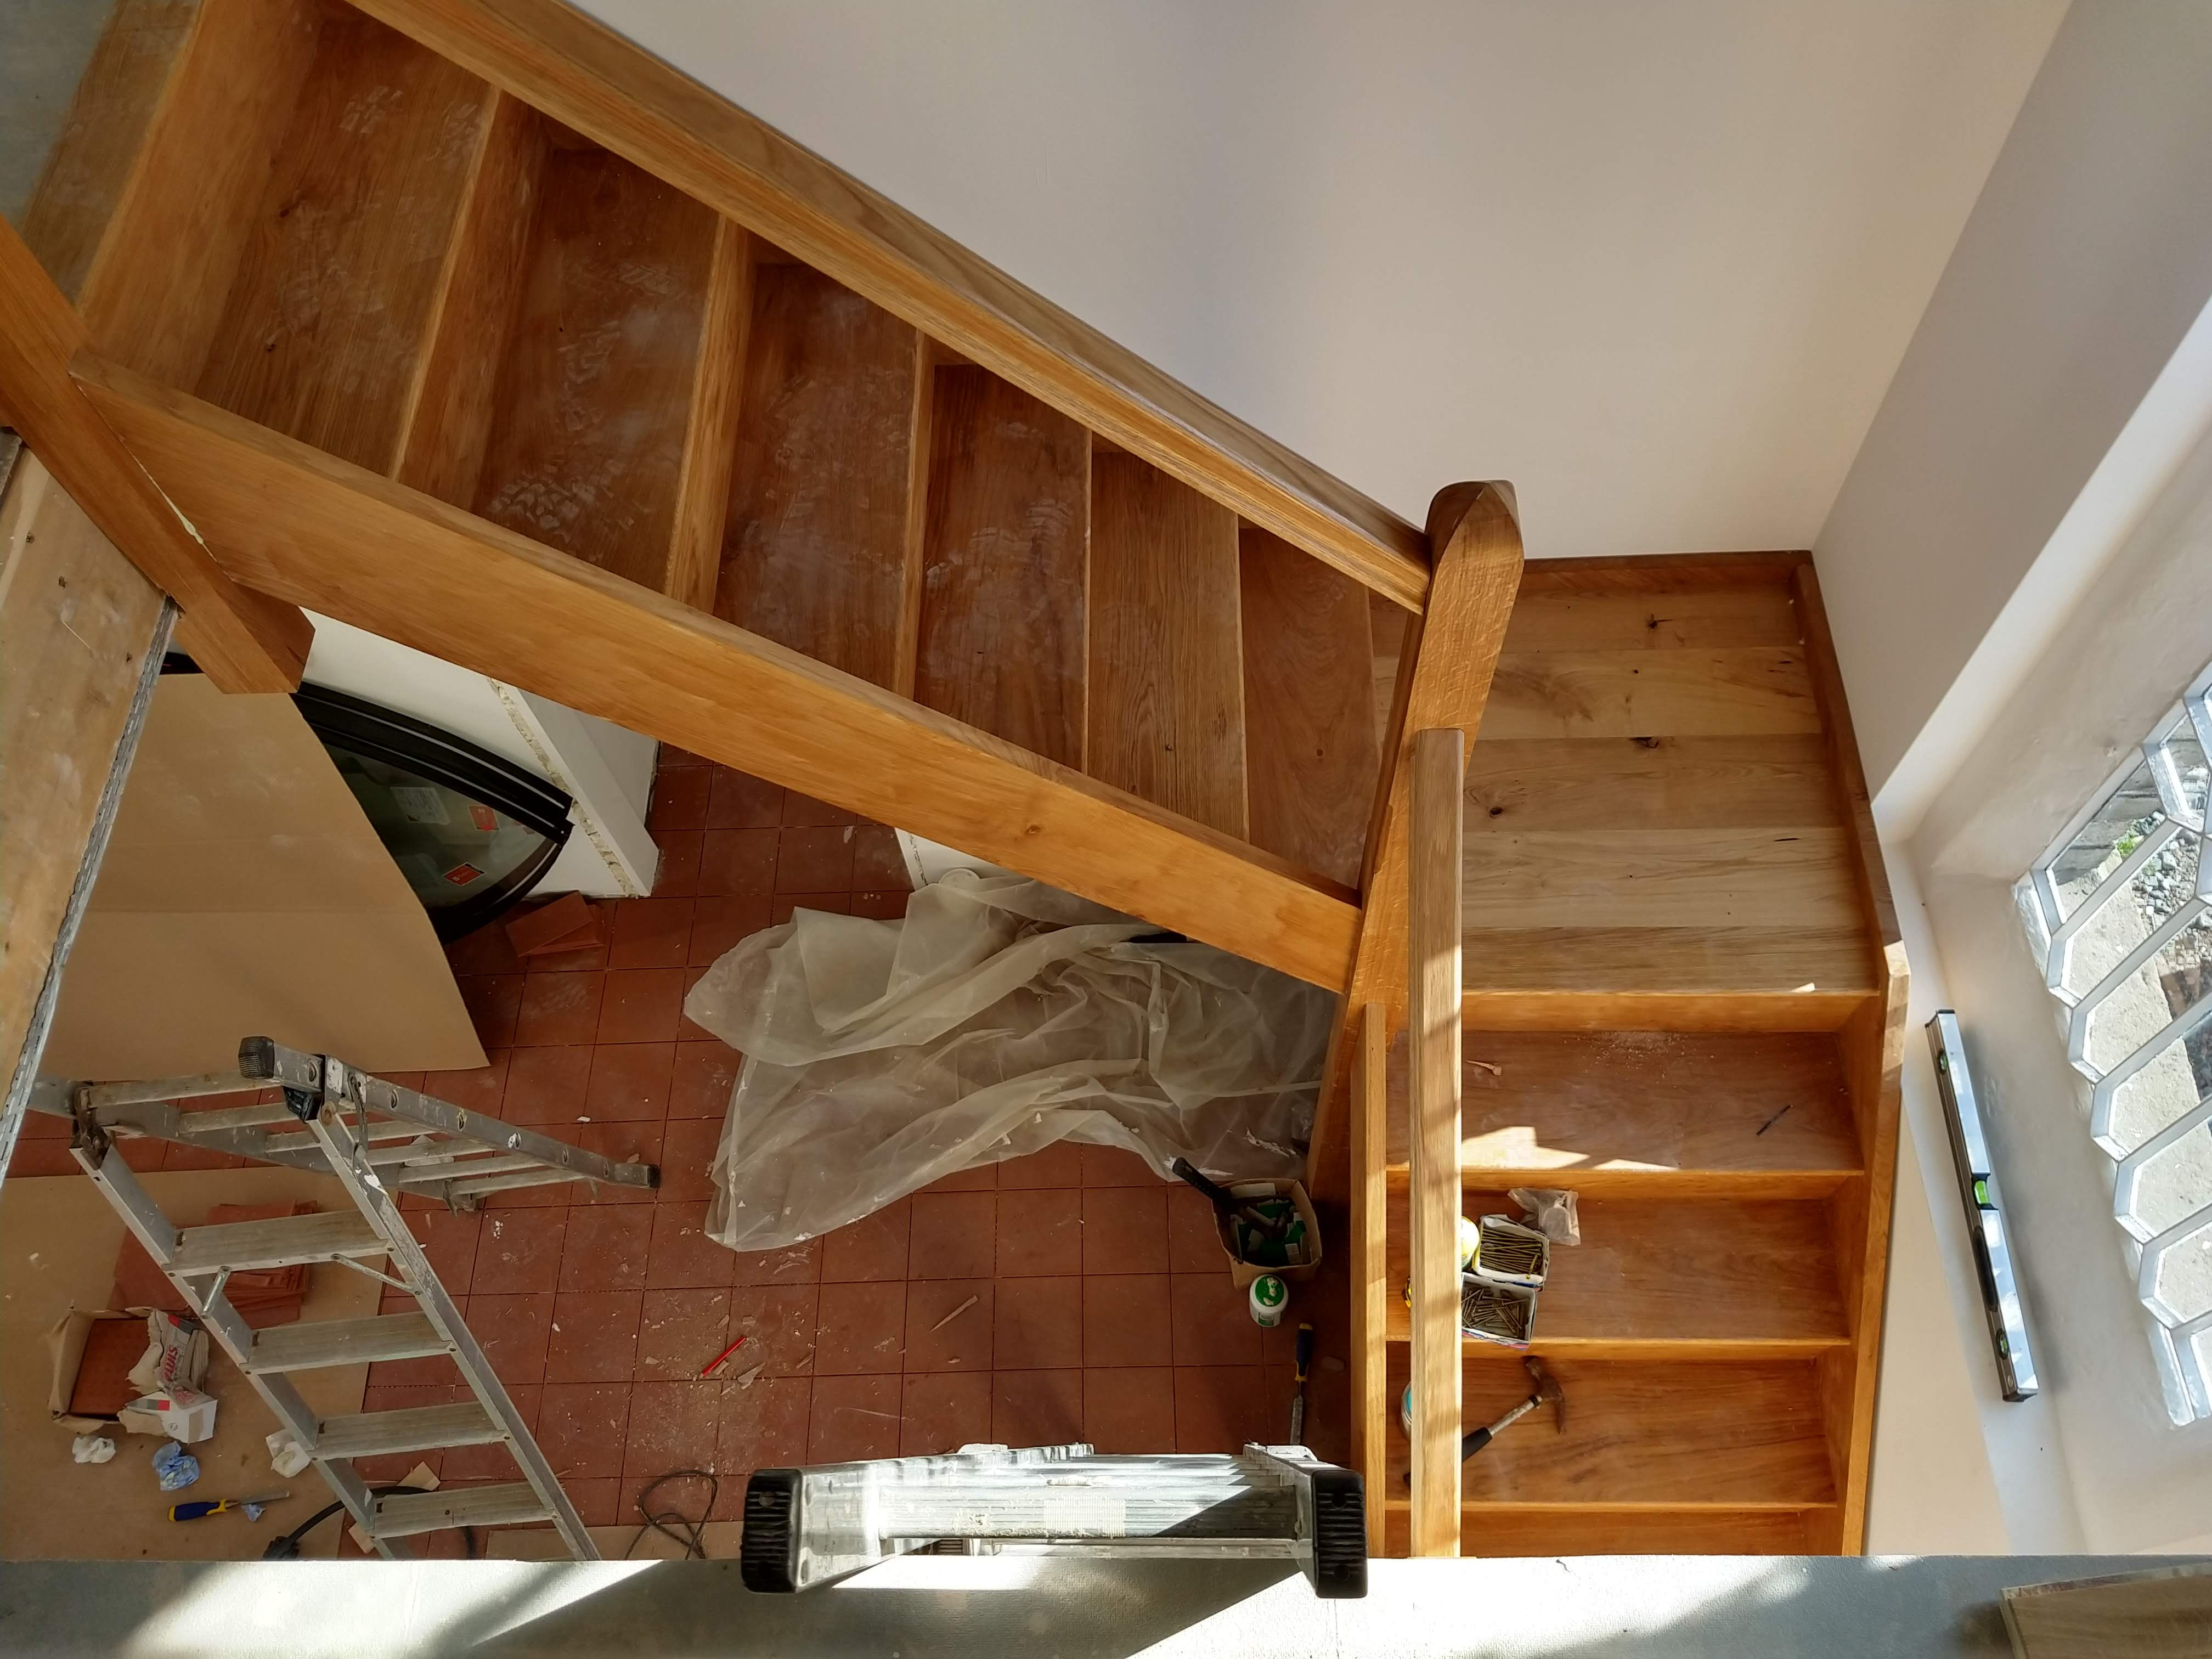 Bespoke staircase fitting 4